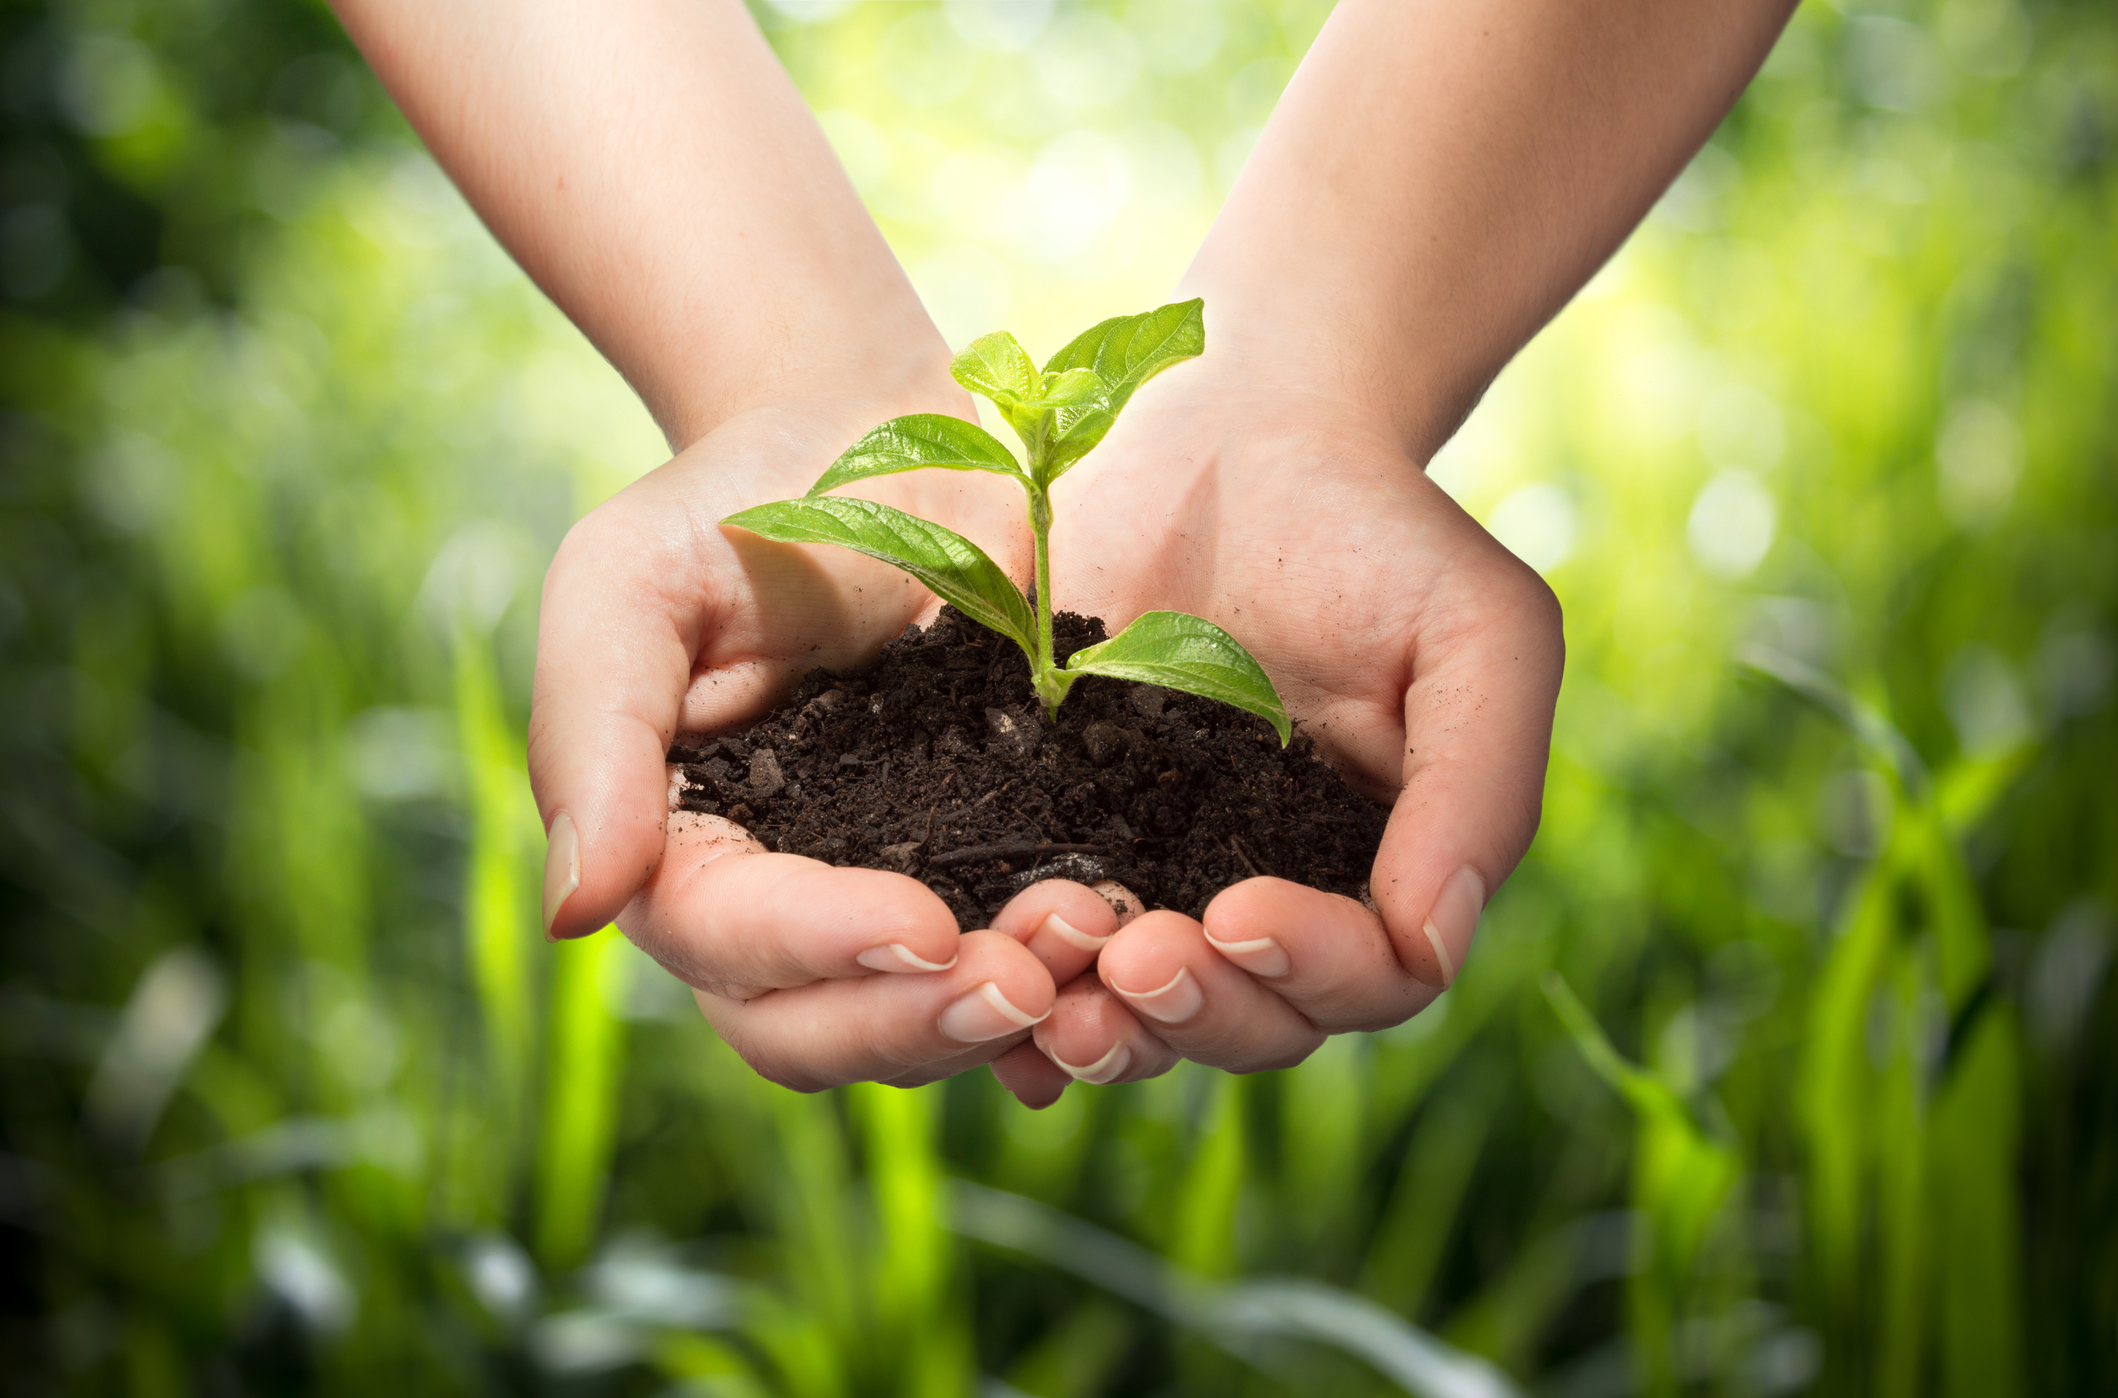 Advice for Farmers: Taking Care of Your Agricultural Endeavors